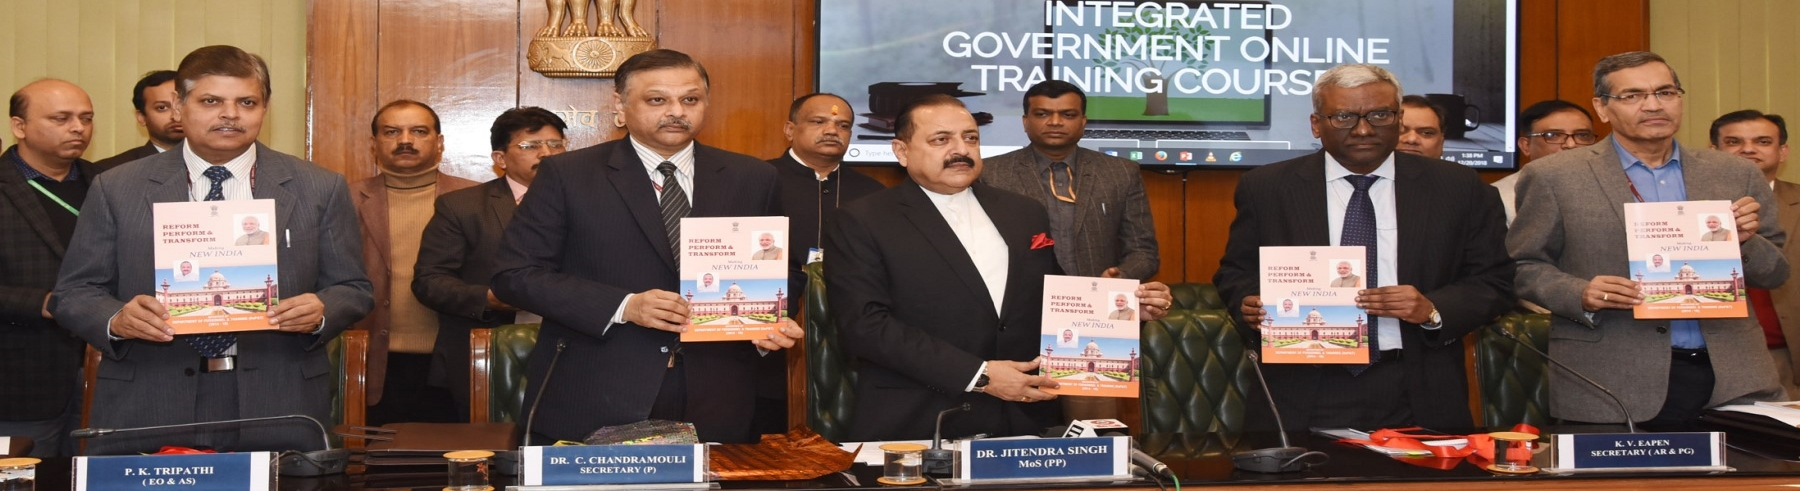 Launching of iGOT (Integrated Government Online Training) Courses and release of booklet on Governance initiatives of DoPT by Dr.Jitendra Singh, Honorable MoS (PP)